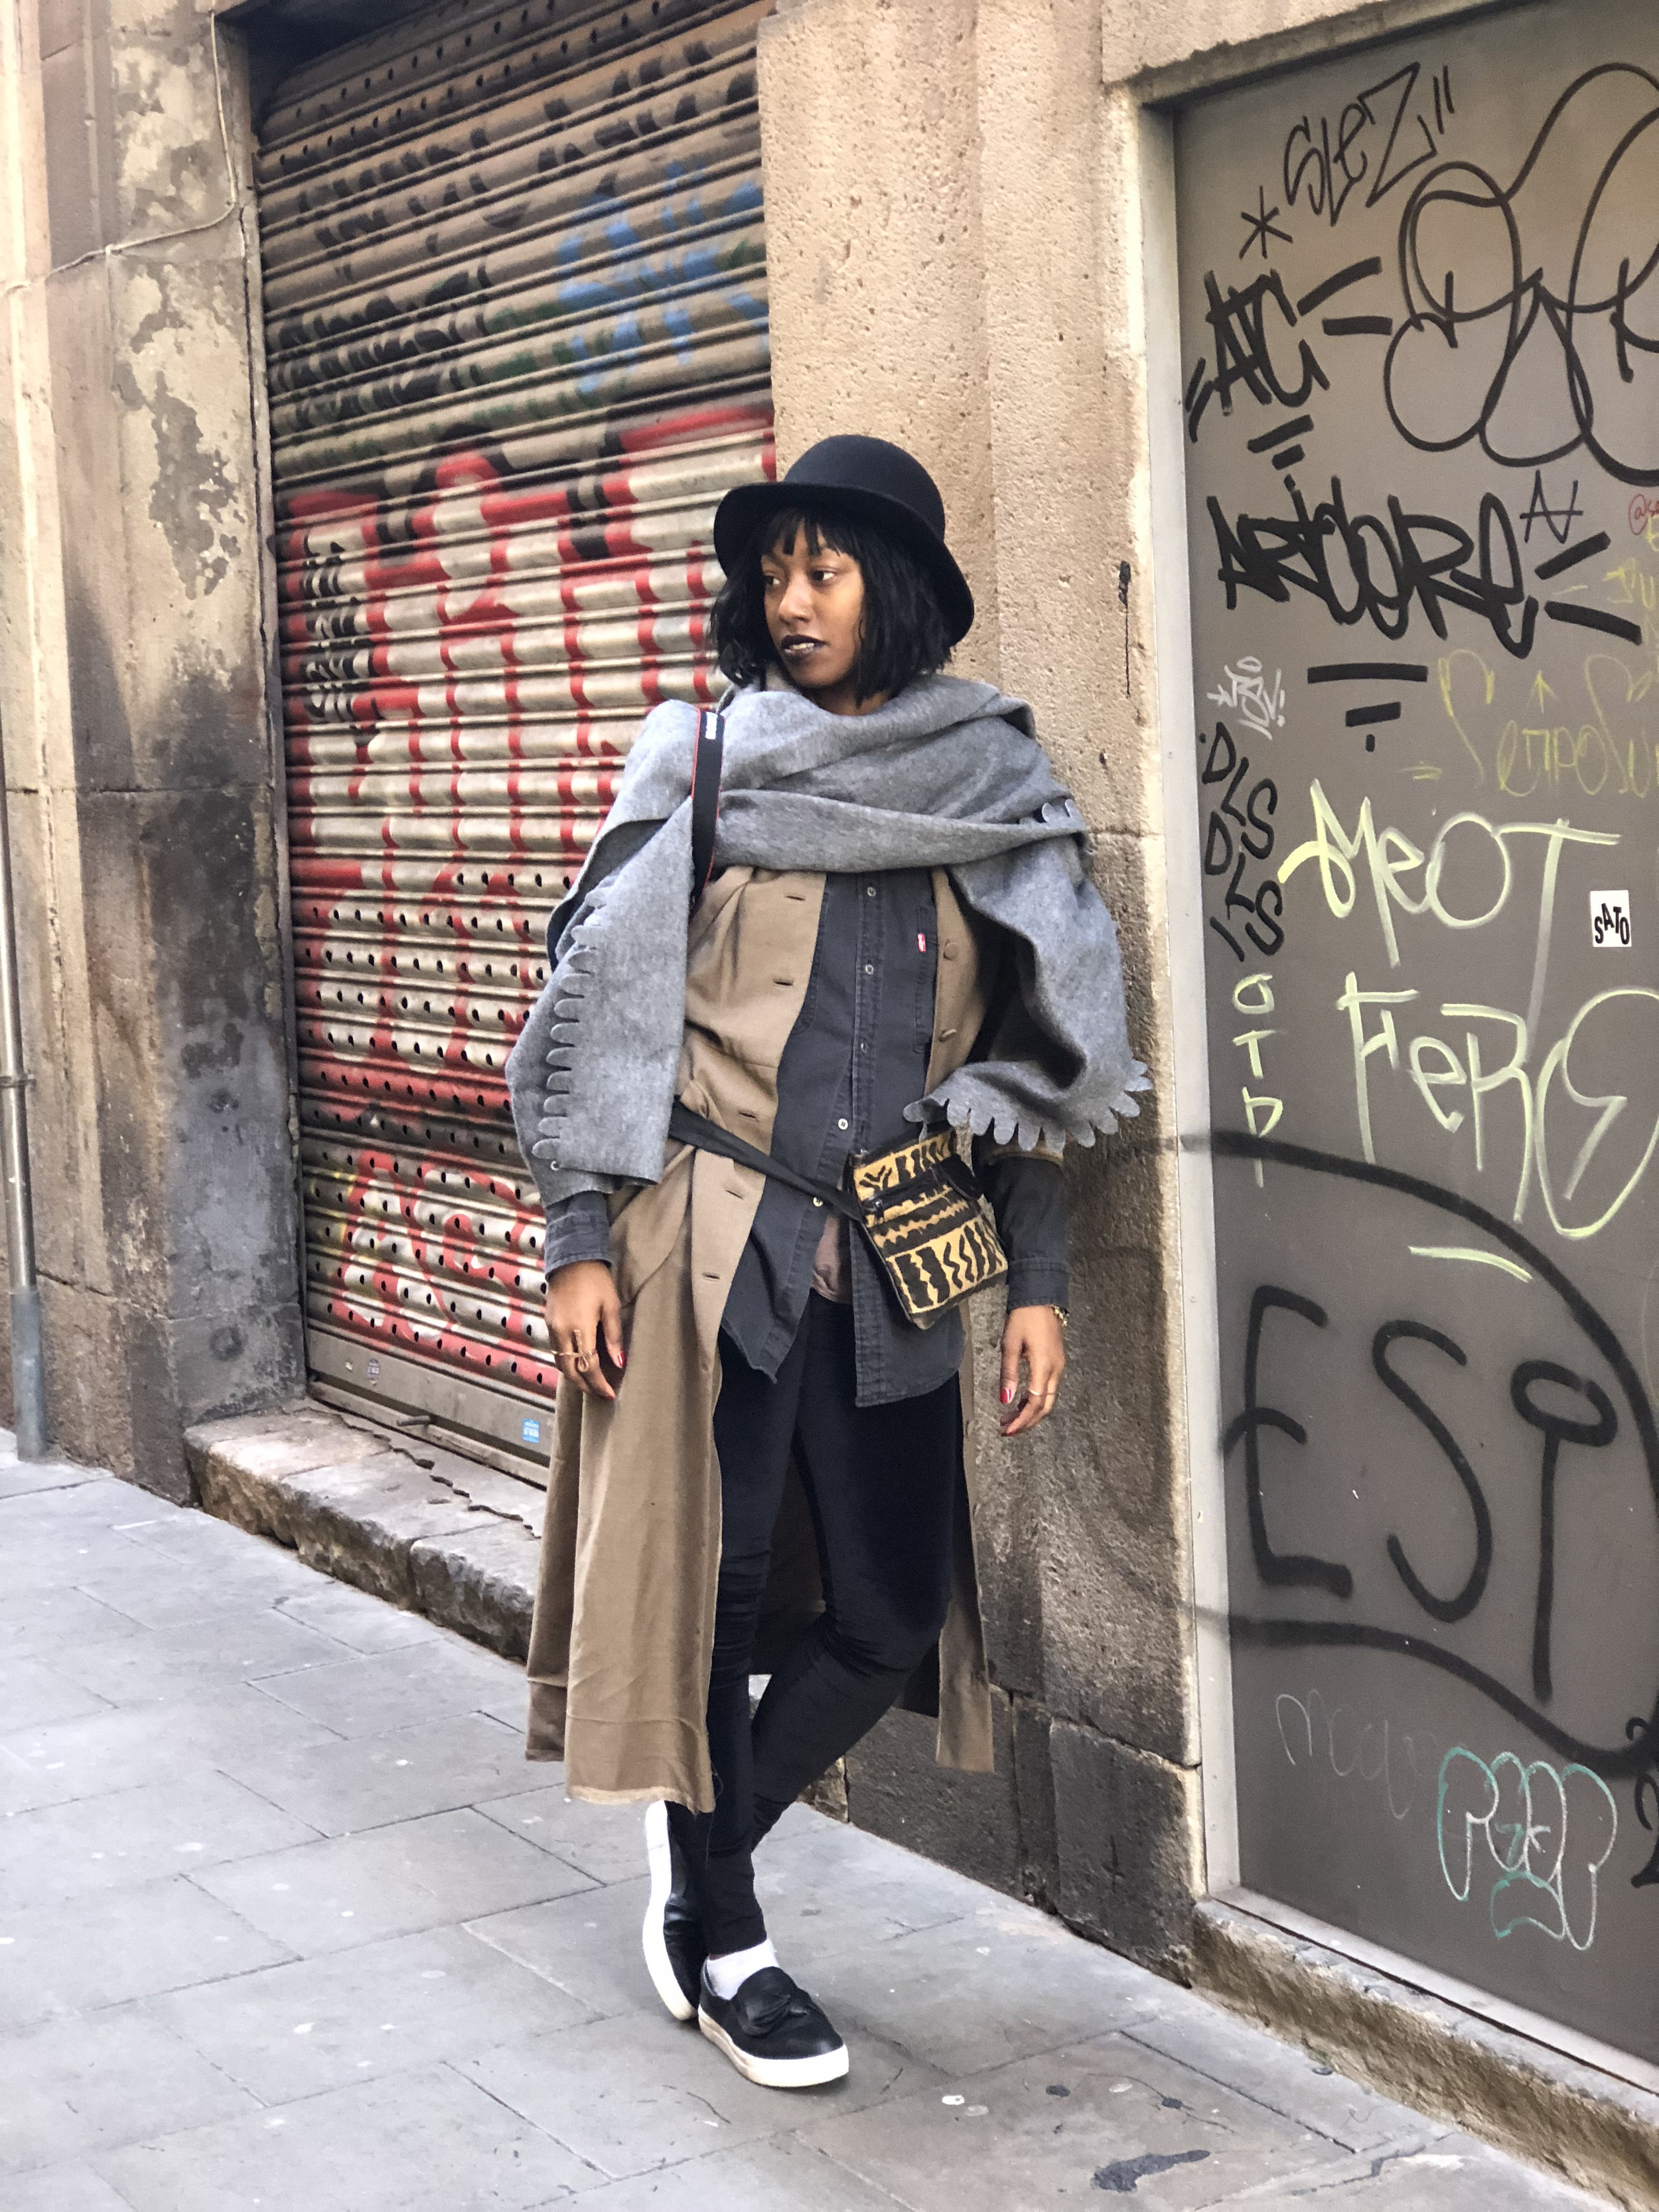 The Streets of Barcelona - Vintage Levi's grey button up- Line & LabelVintage duster jacketVelvet leggings - American ApparelThrifted wool hat - Beacon's ClosetThrifted mudcloth fanny pack